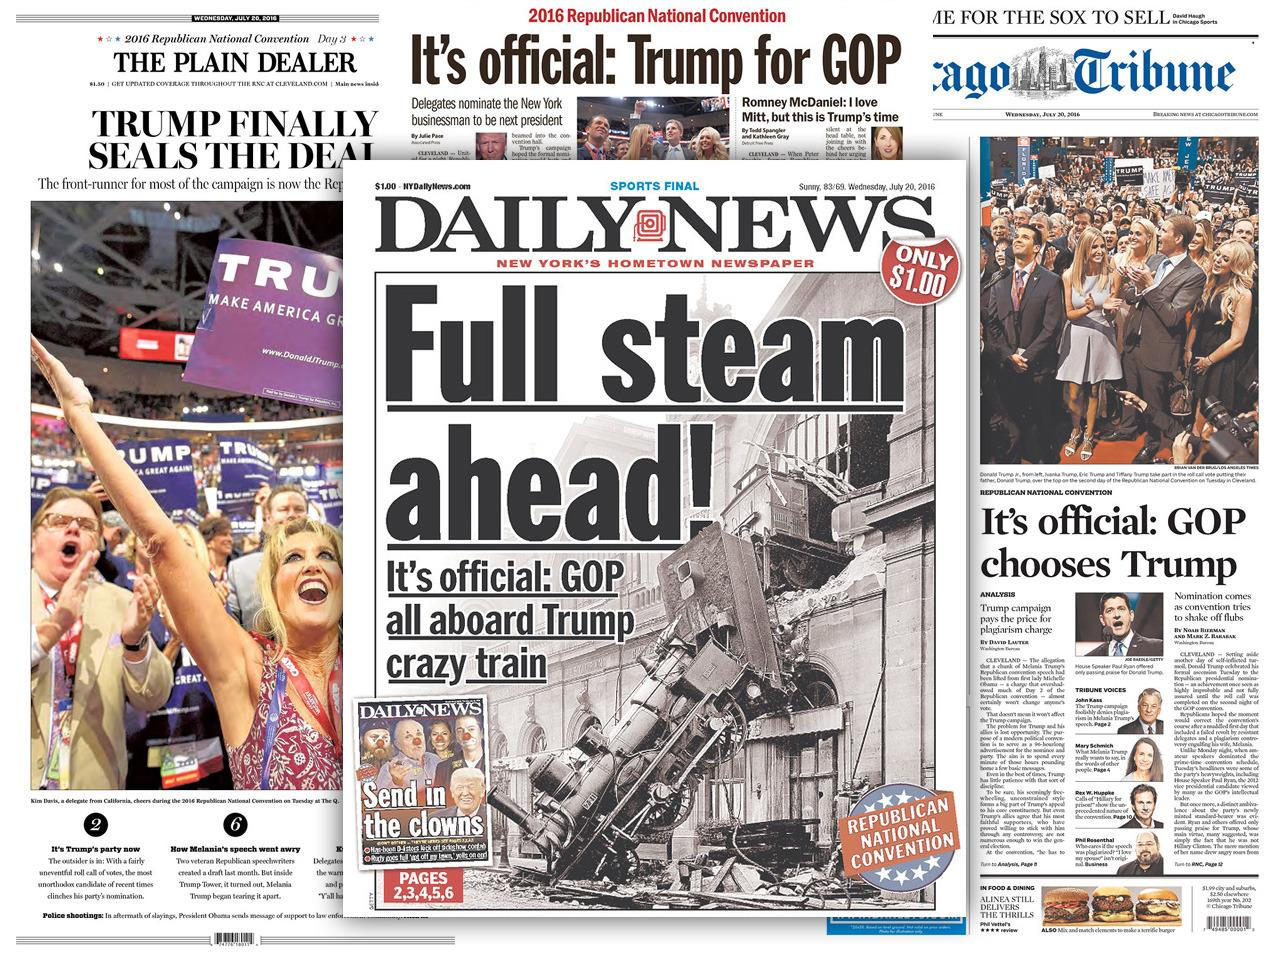 "<p>""All aboard the Trump crazy train,"" declared the Daily News, a newspaper long critical of Trump. (newsmuseum.org)</p>"